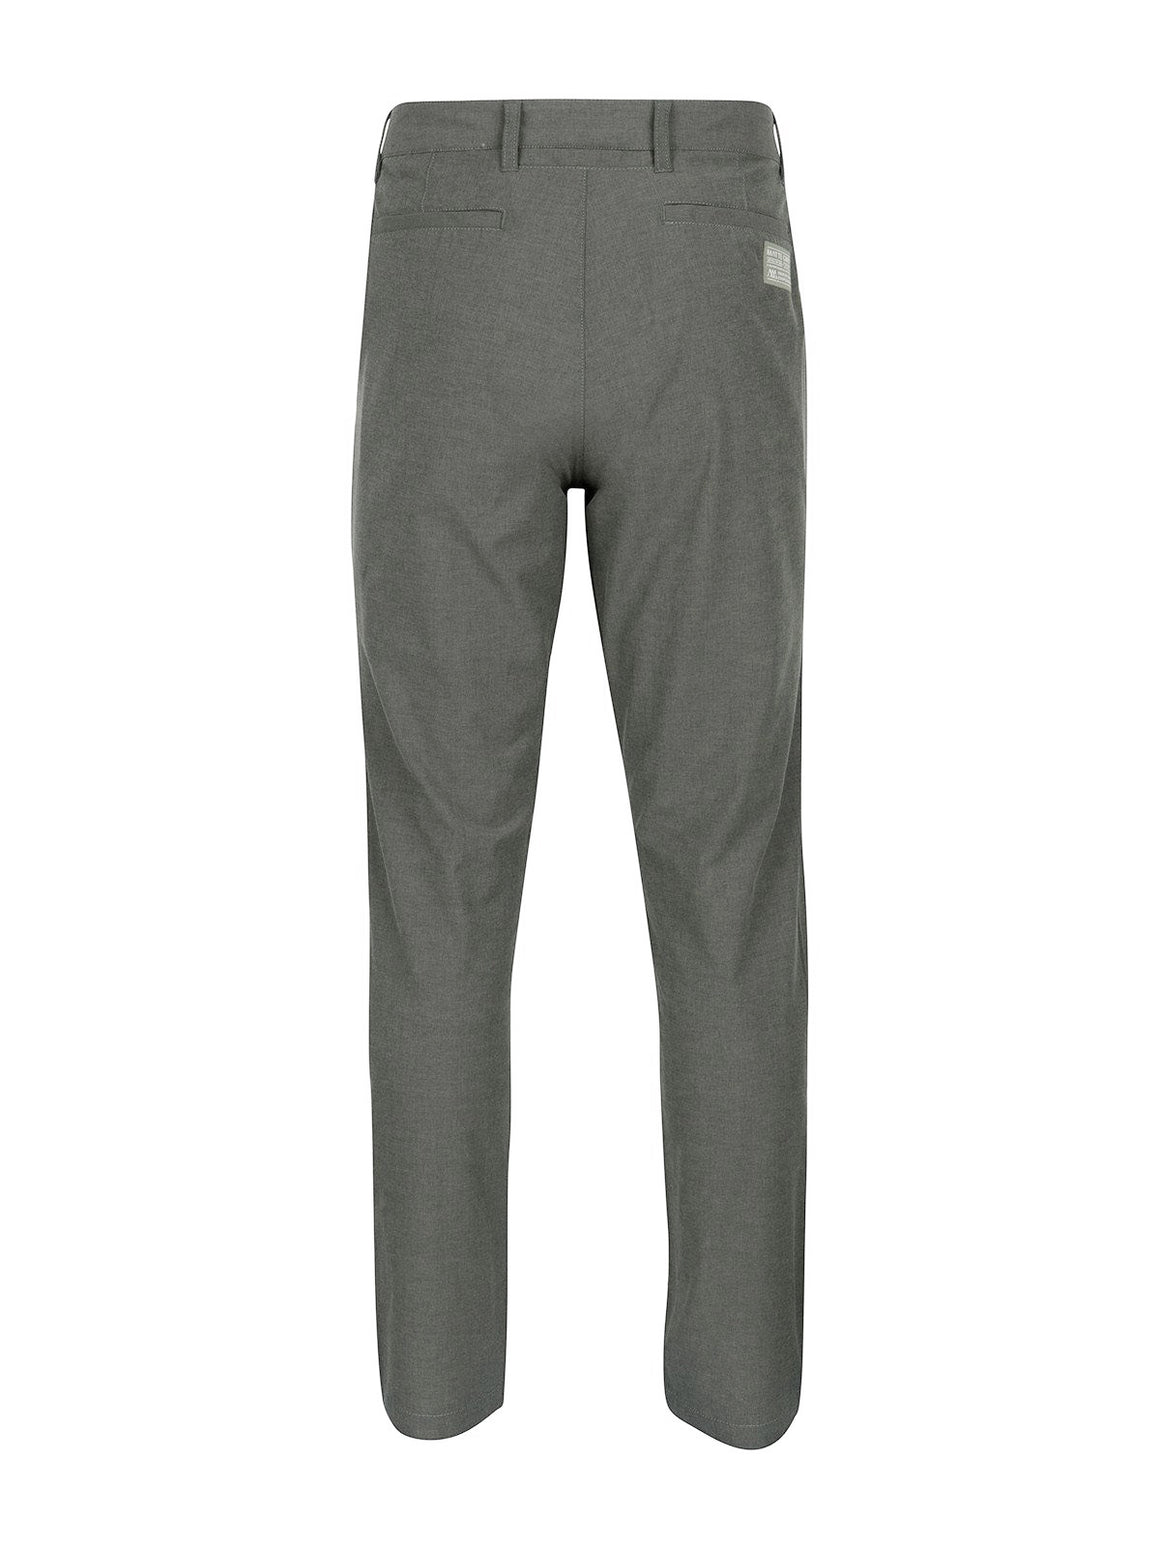 Traveler FIT101 Pant - Dark Grey